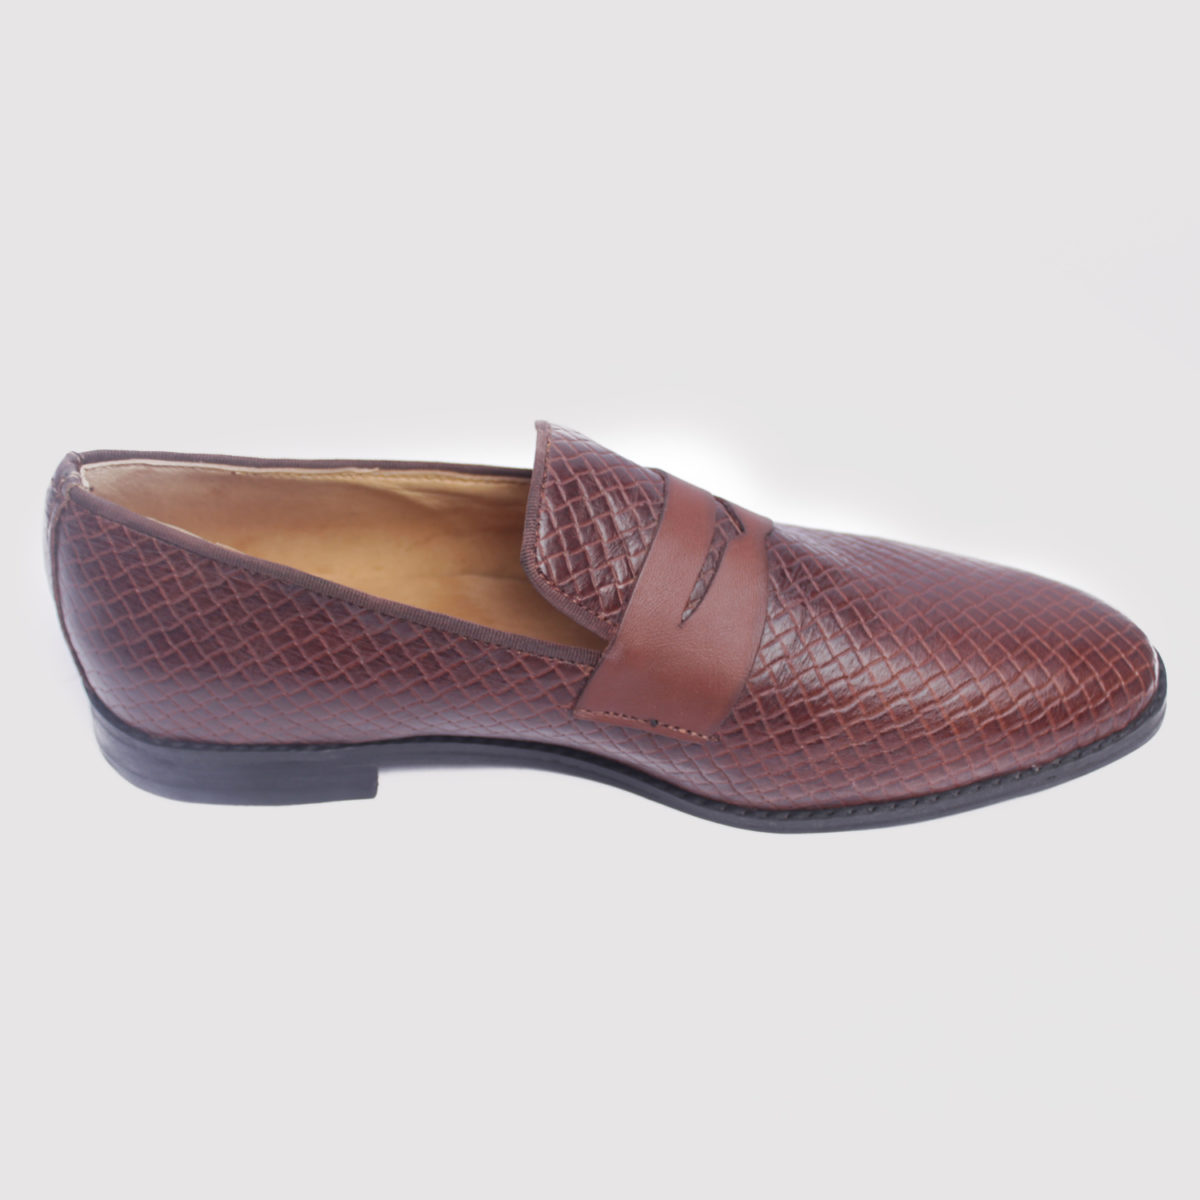 Ike loafers brown leather zorkle shoes in lagos nigeria